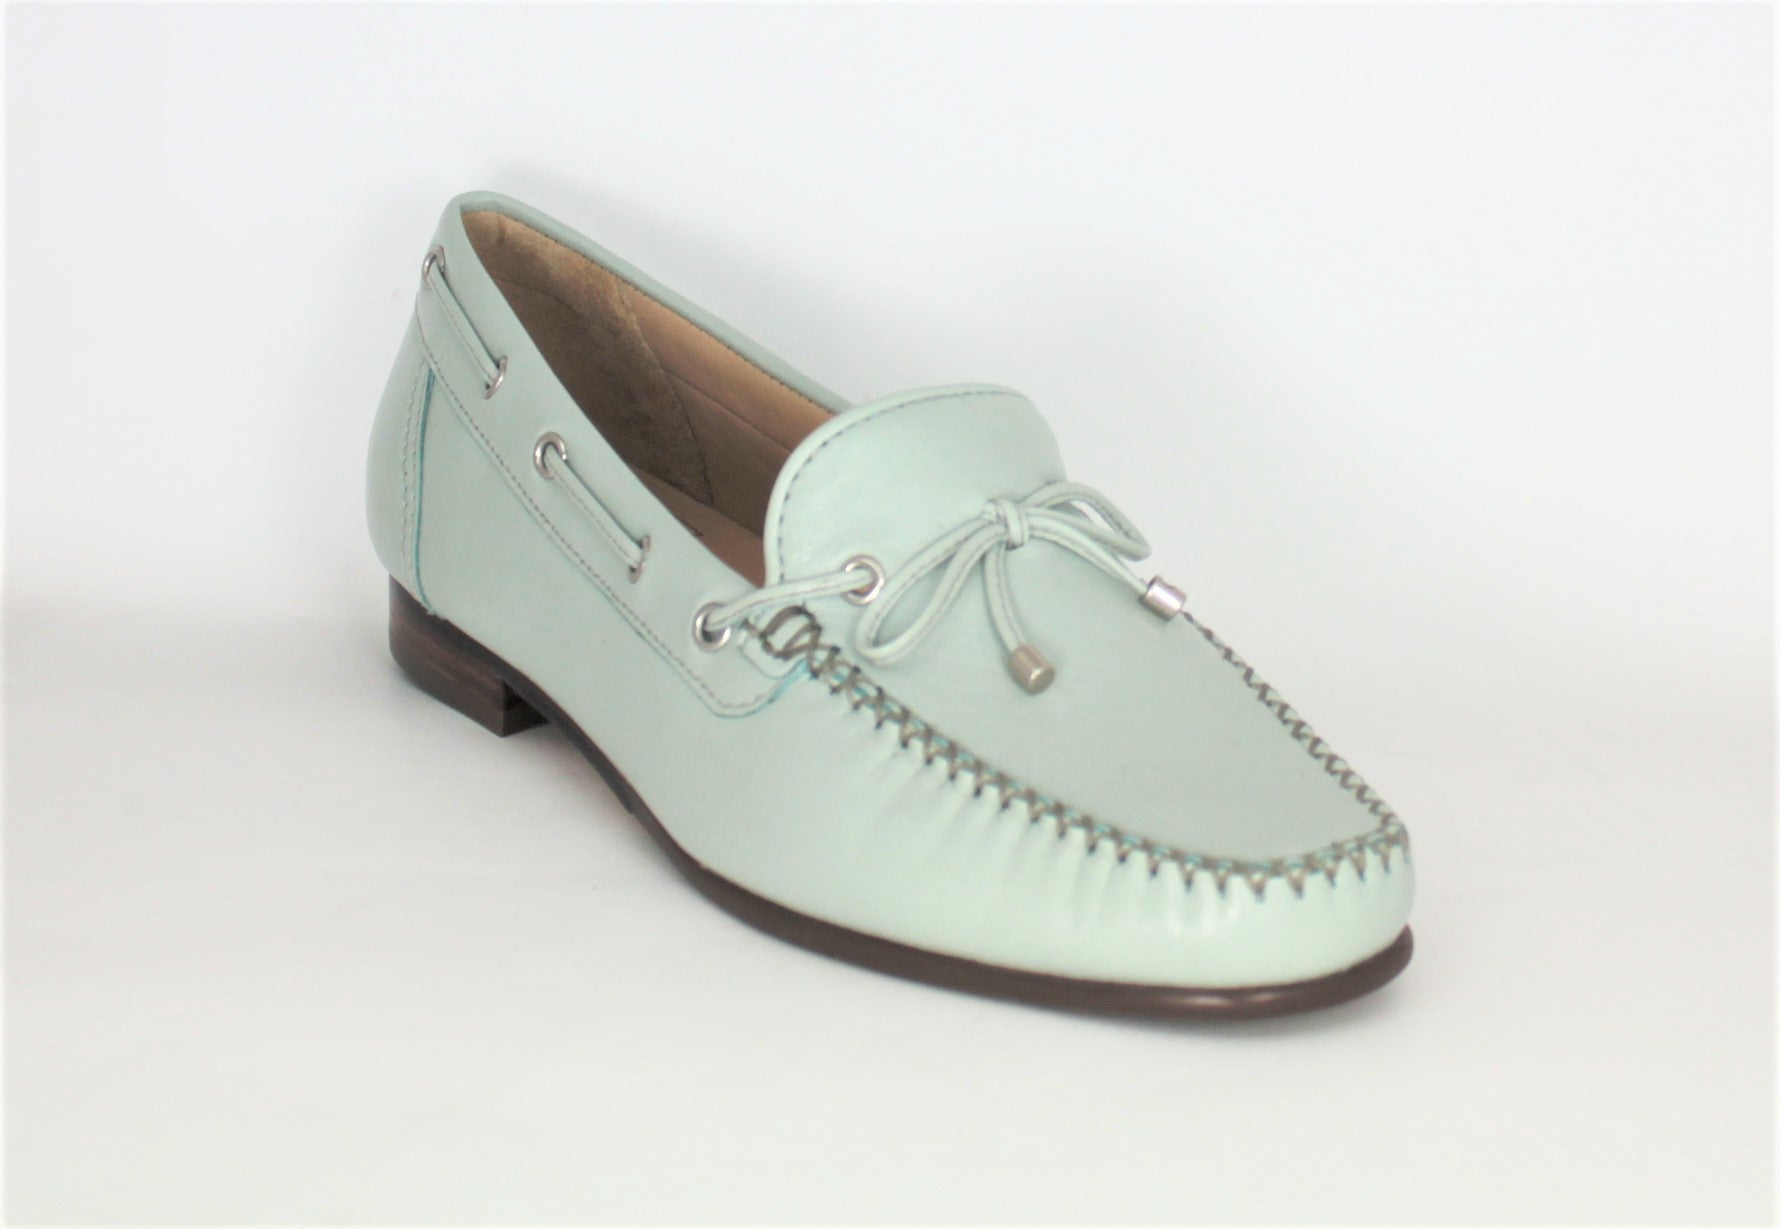 Whip Low Heel Loafer With Bow Trim